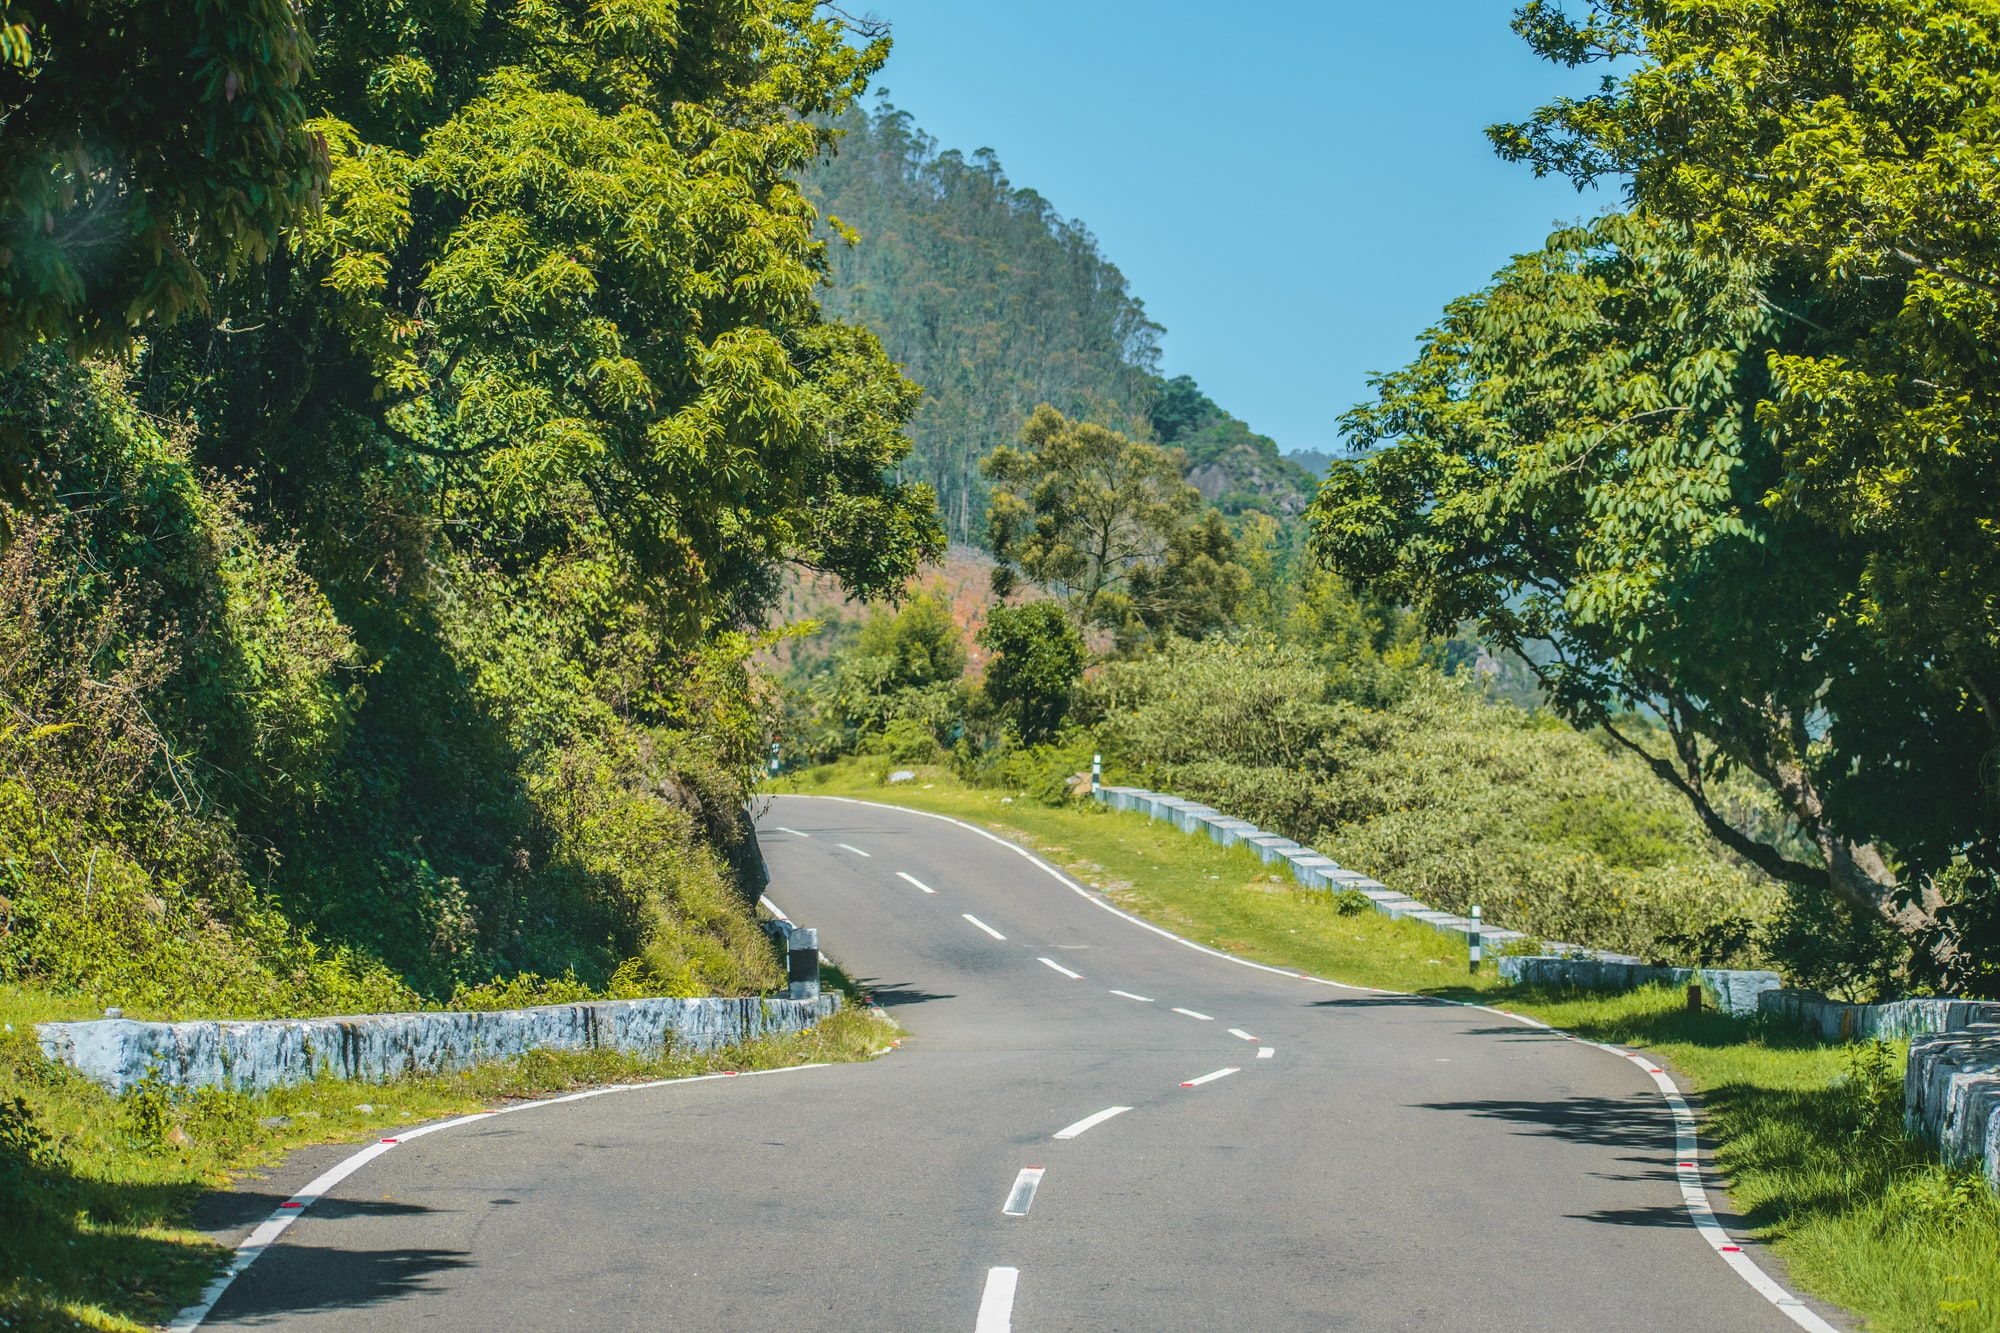 Indian hill roads can sometimes look right out of a dream.